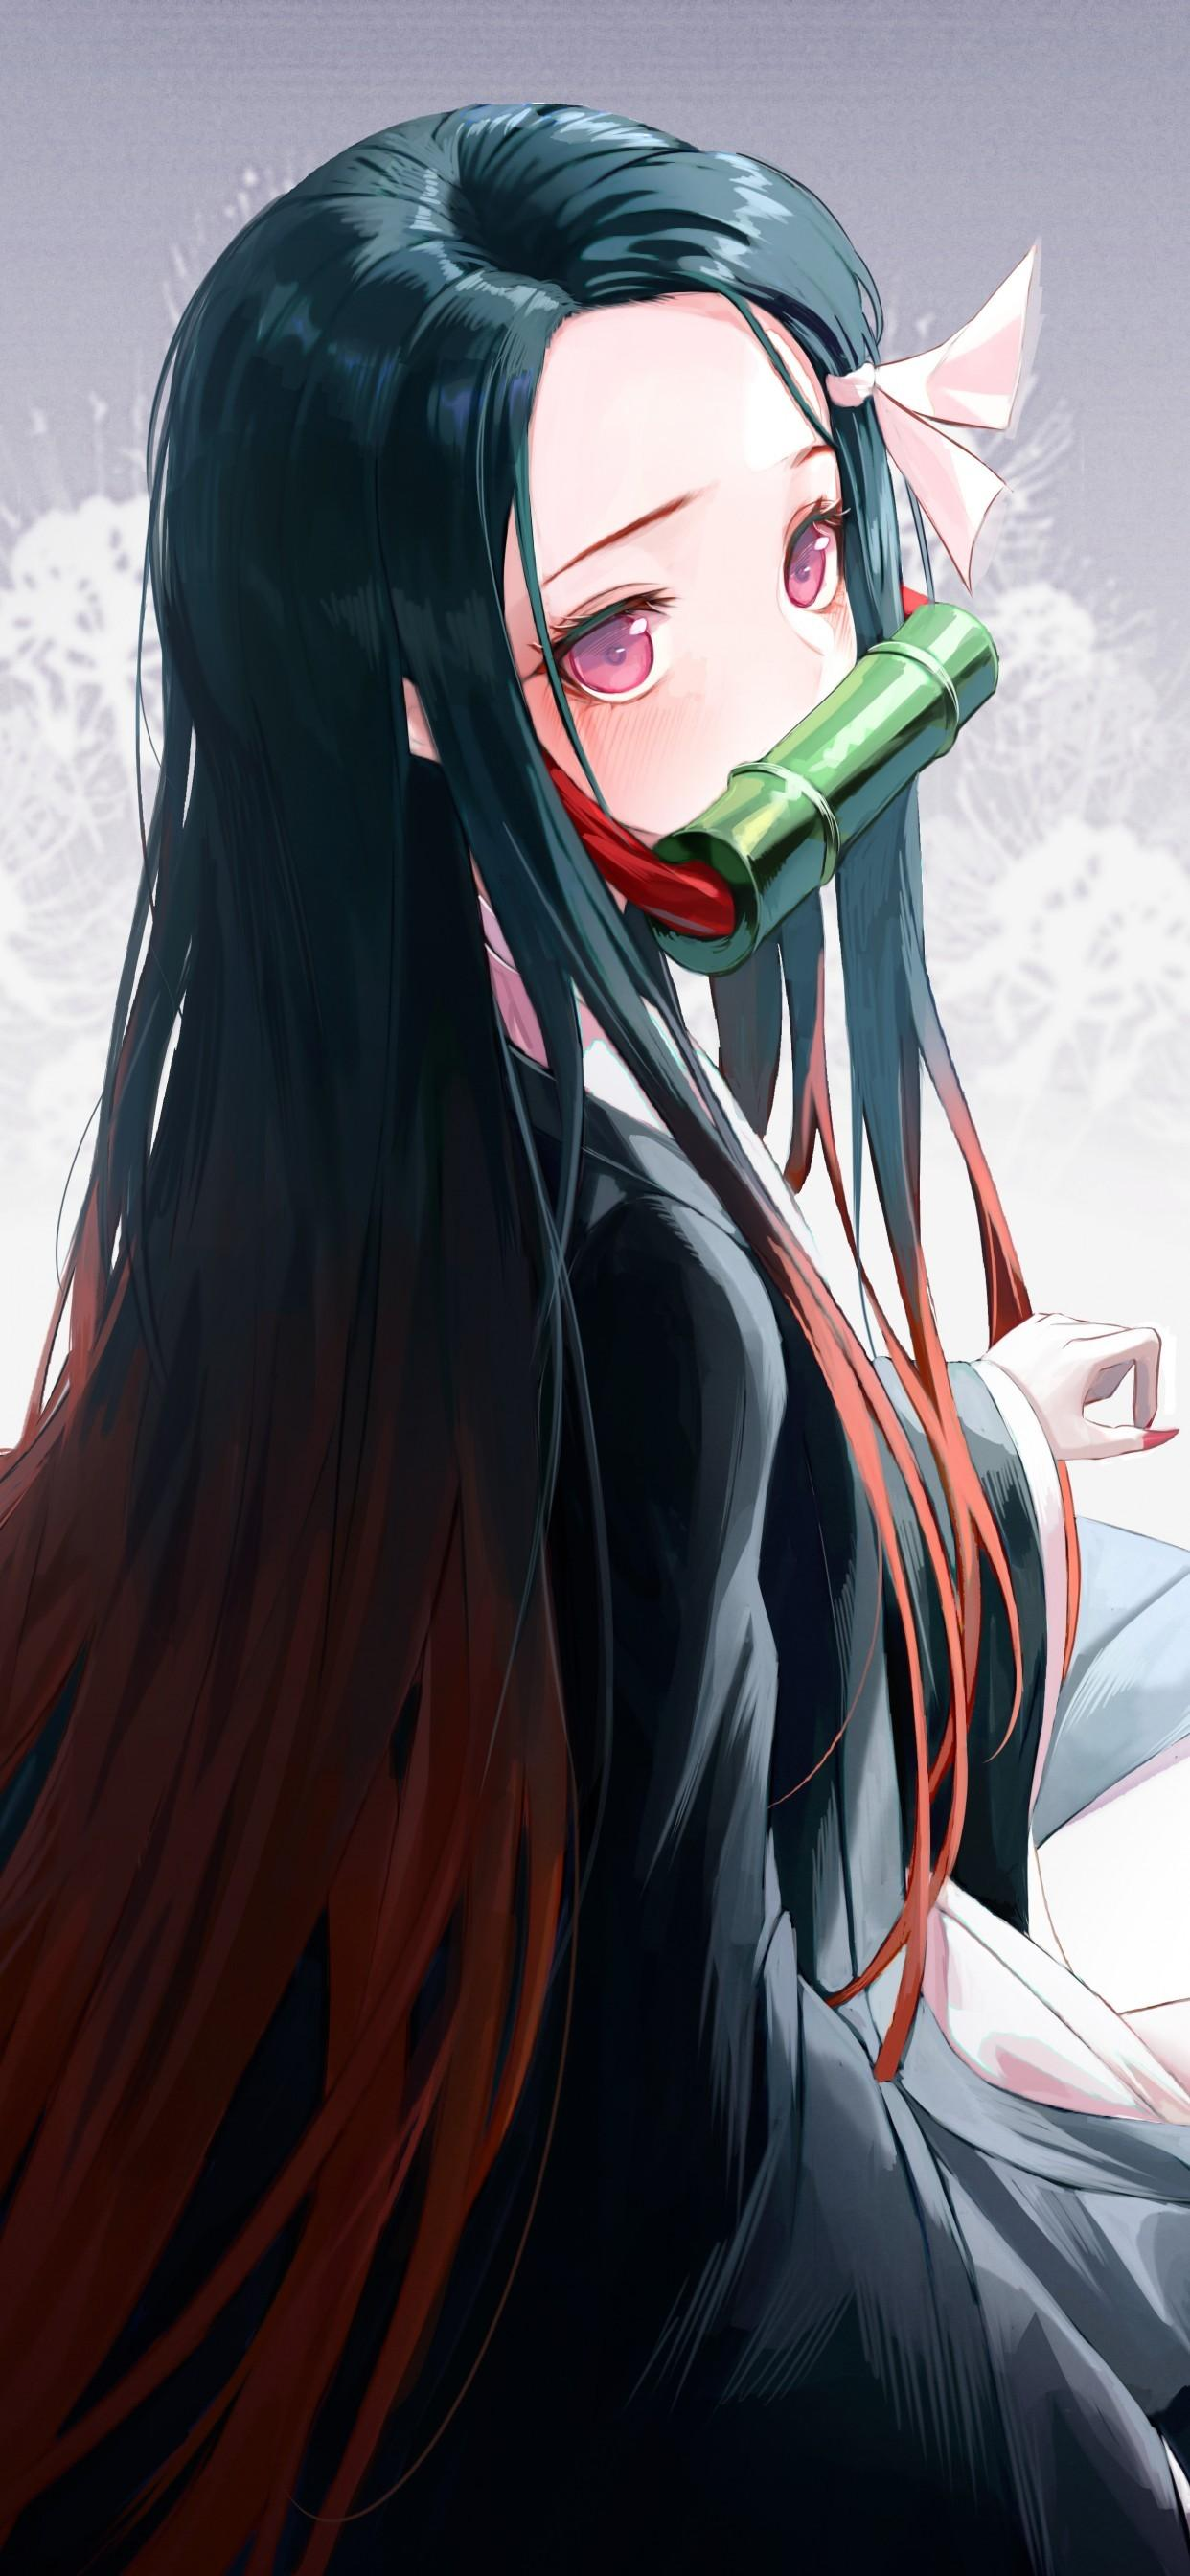 Download 1242x2688 Kamado Nezuko, Cute, Long Hair, Black Dress